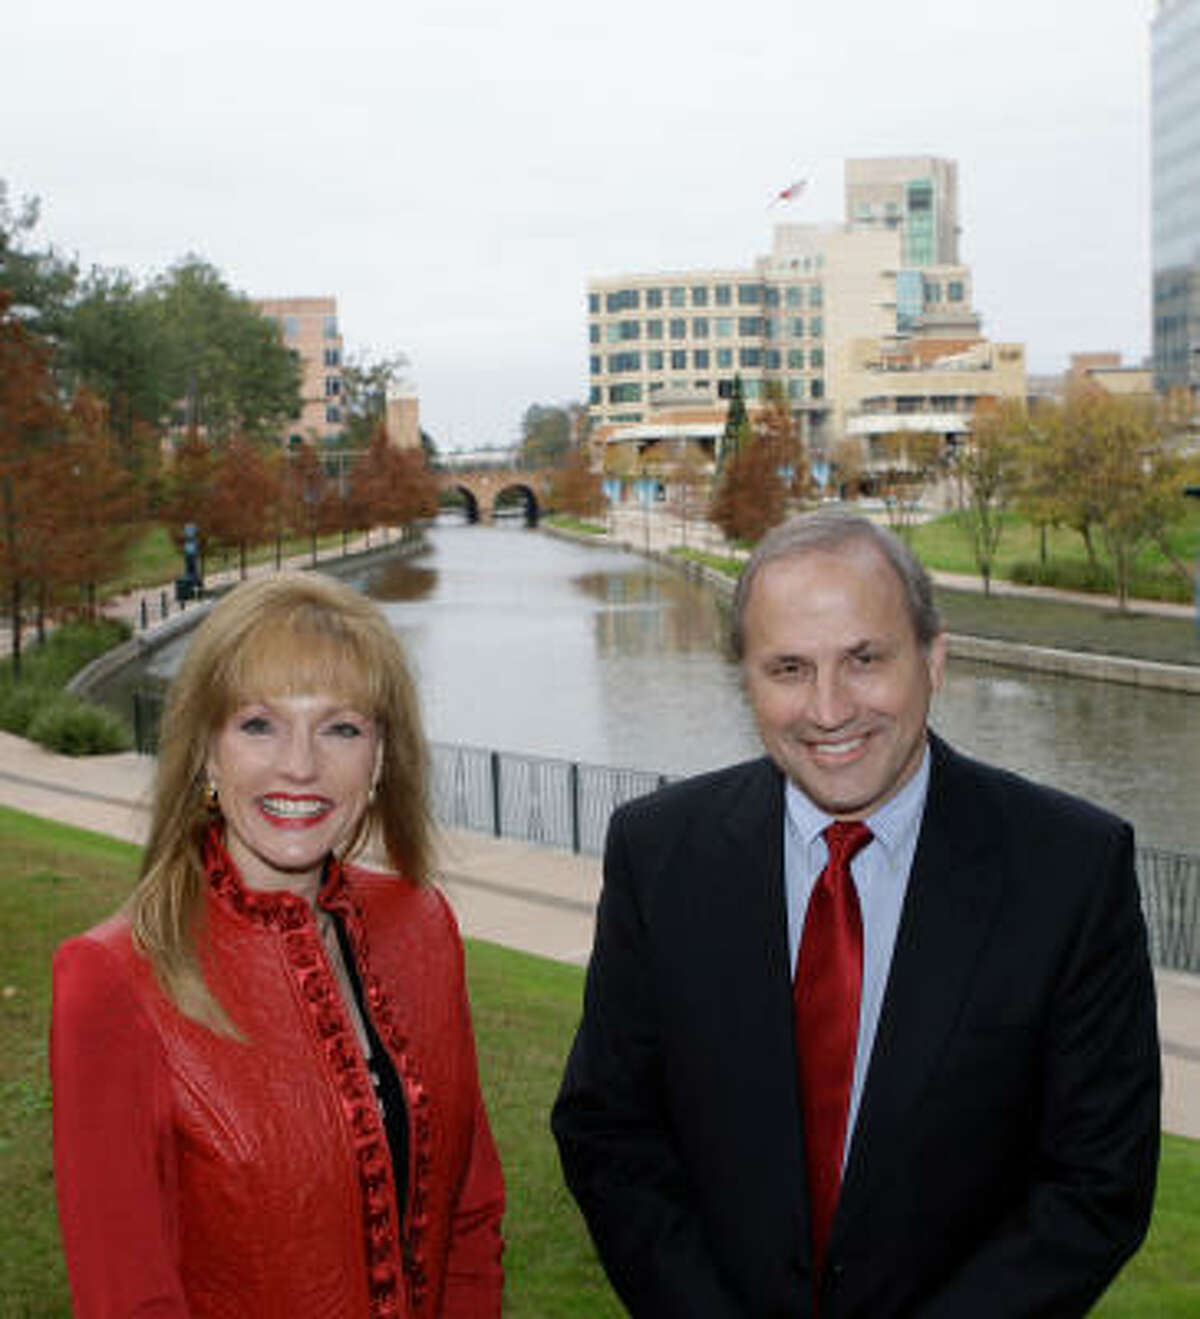 Nelda Blair serves as chairwoman and Don Norrell is president of The Woodlands Township. Her position is comparable to a mayor and his to a city manager.